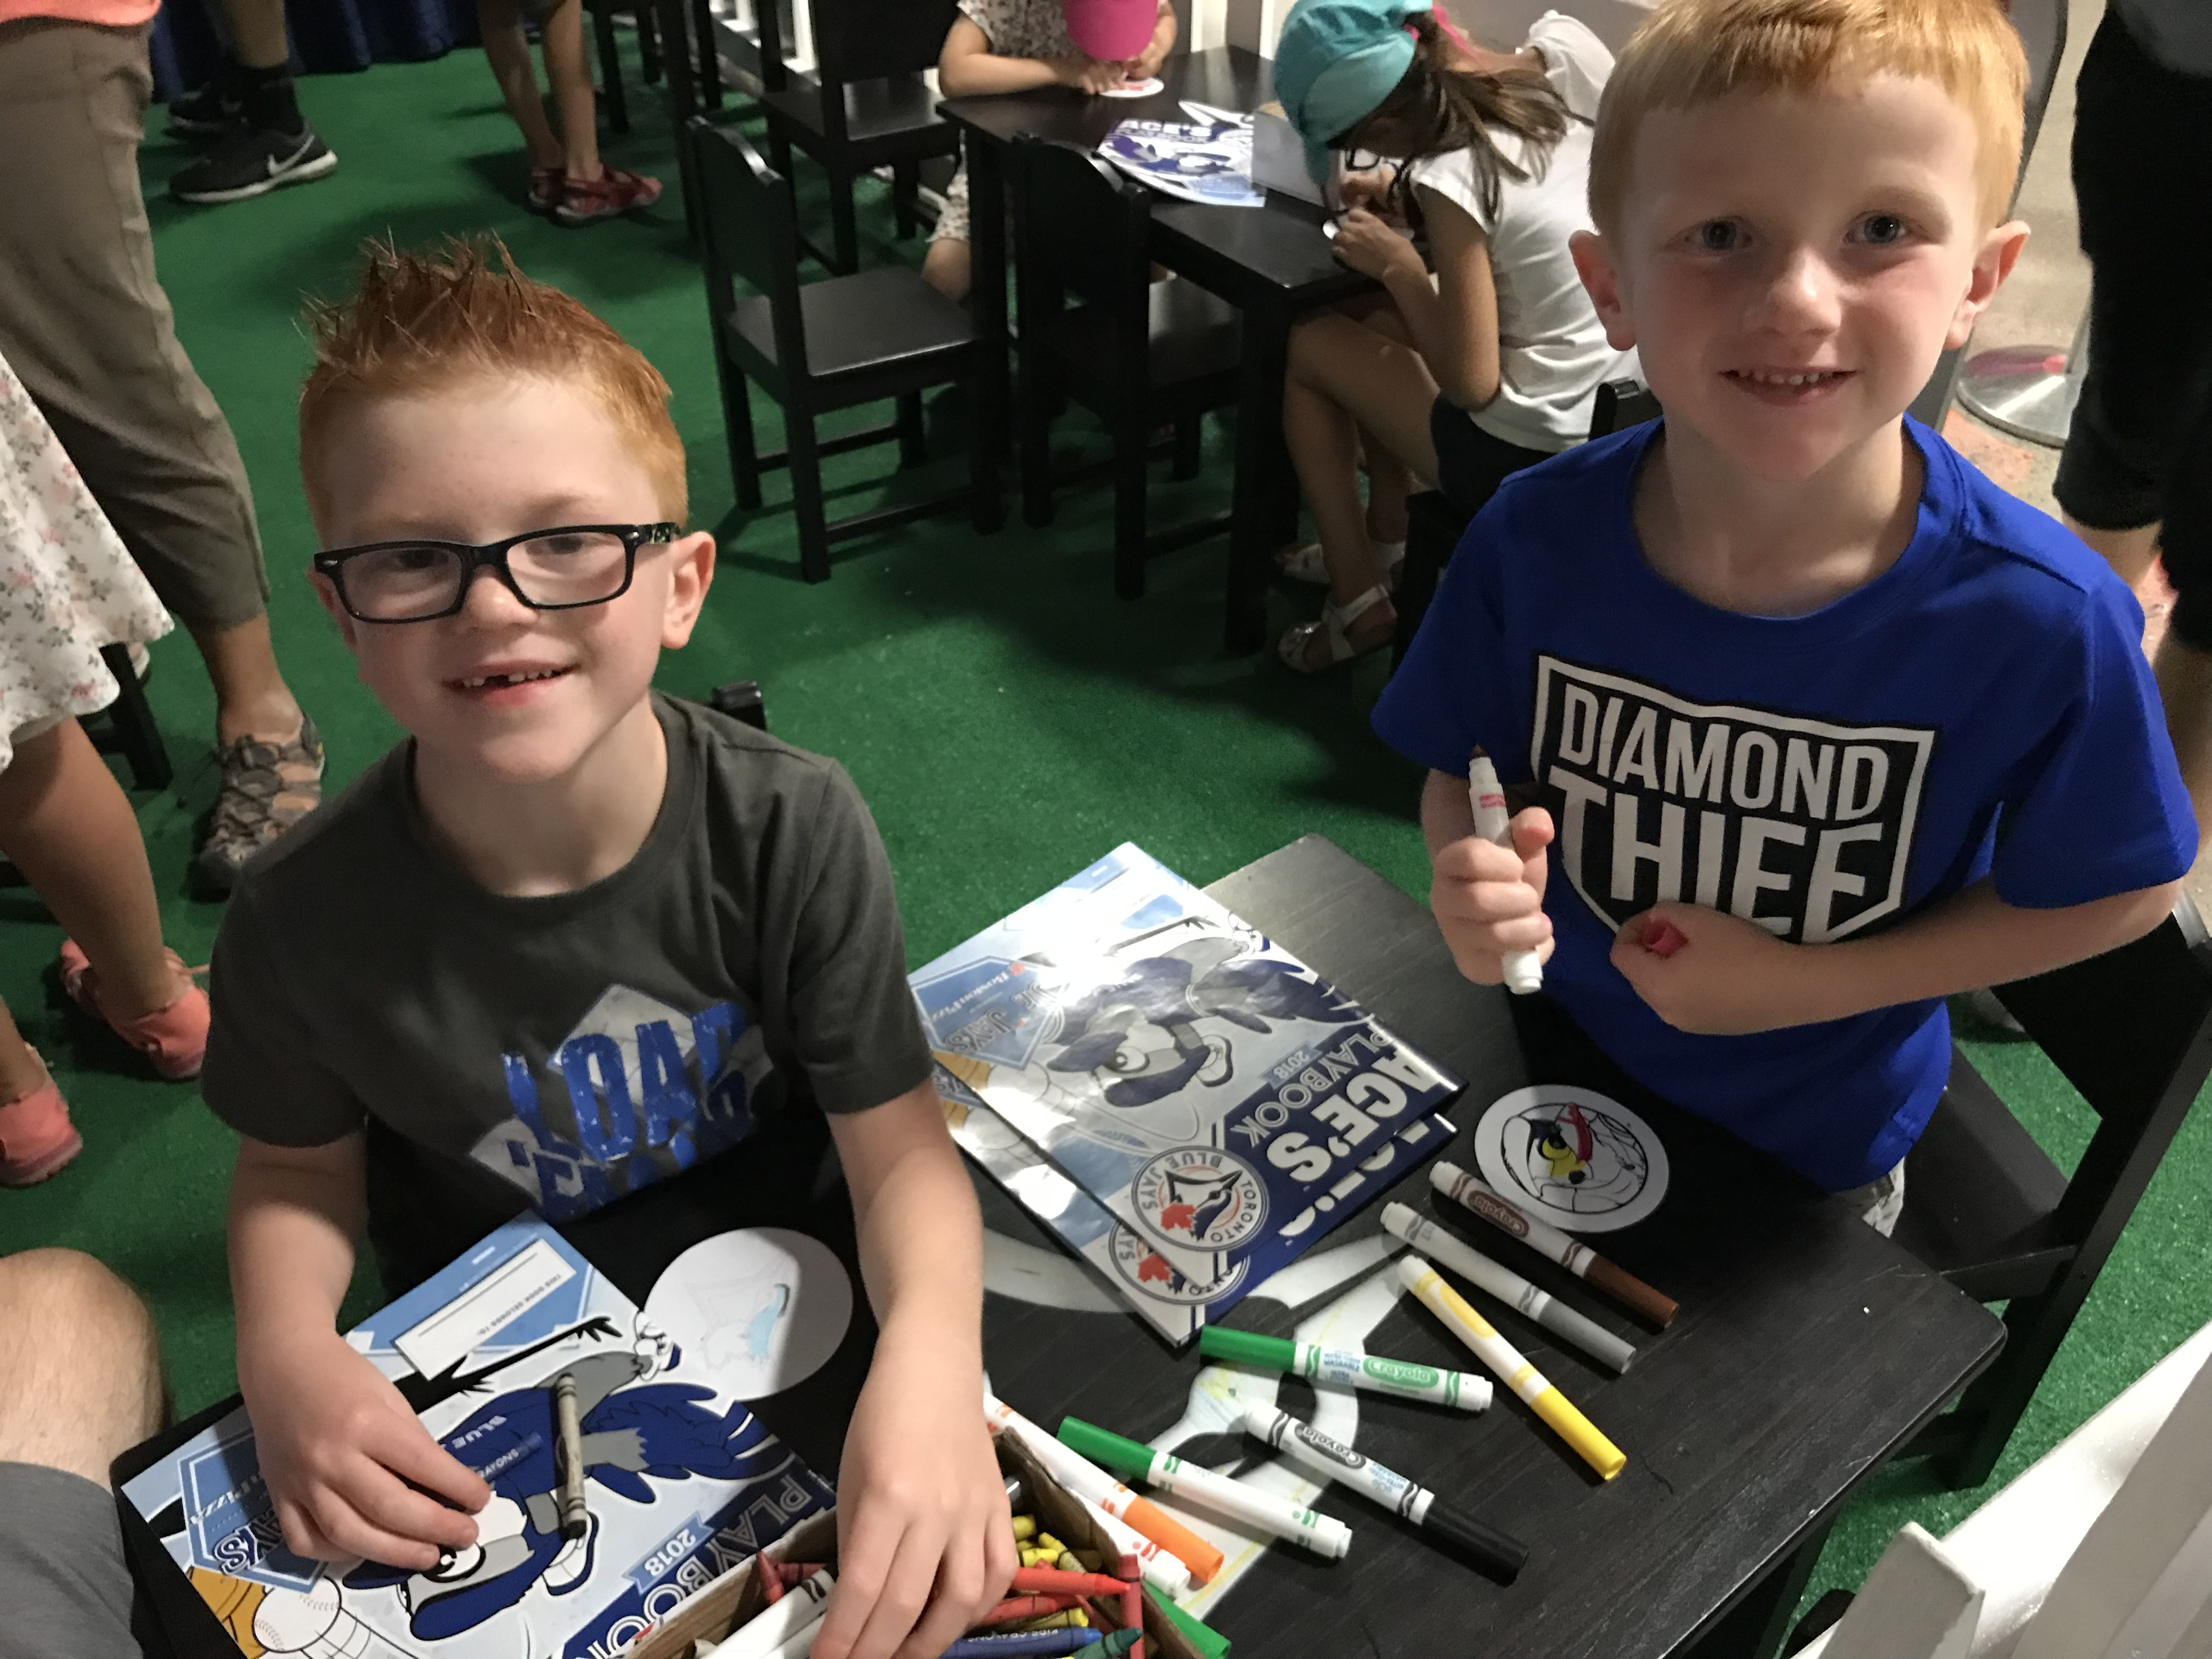 two young boys with coloring books and markers